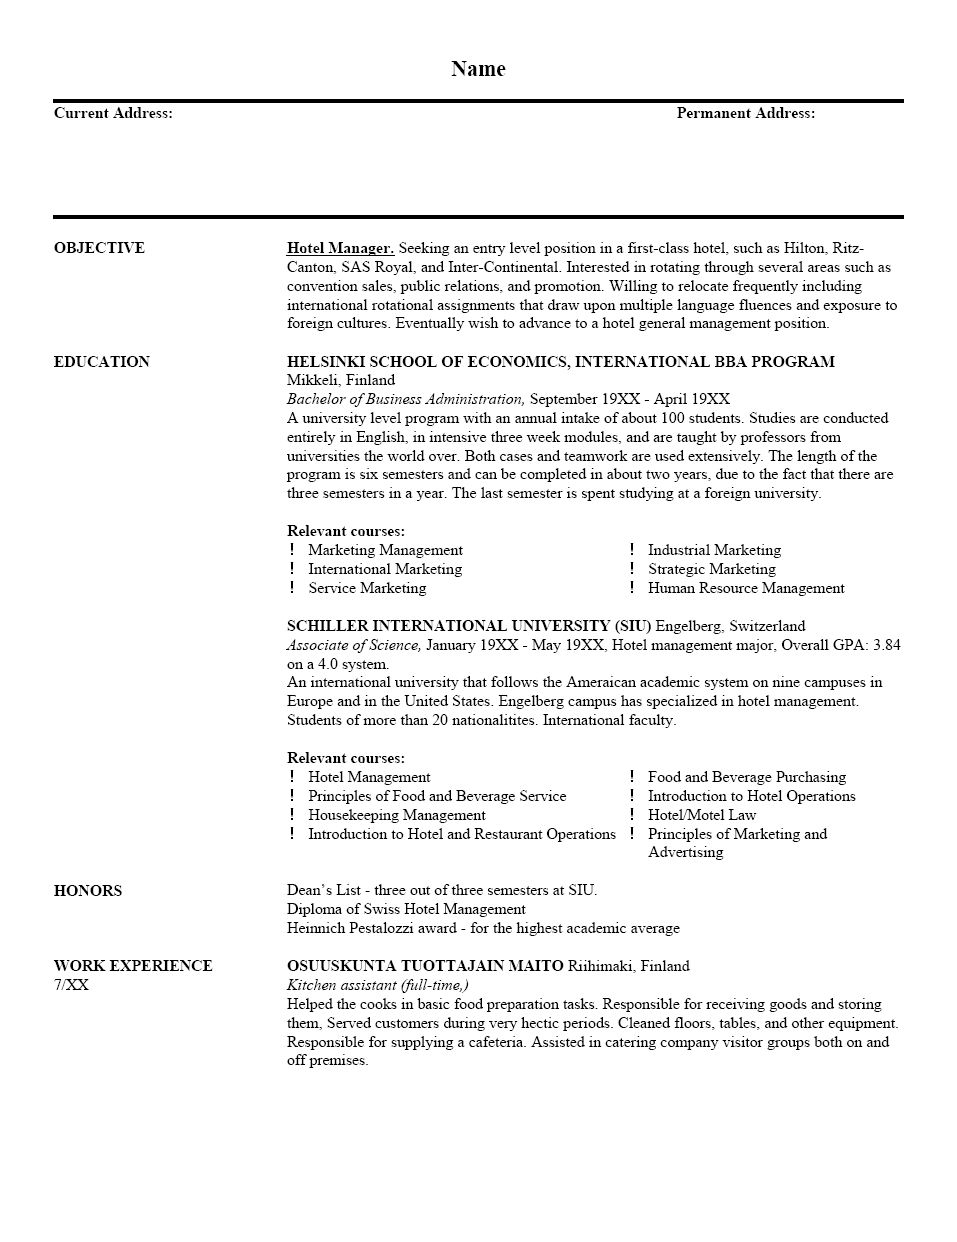 army civilian job resume builder military free security officer